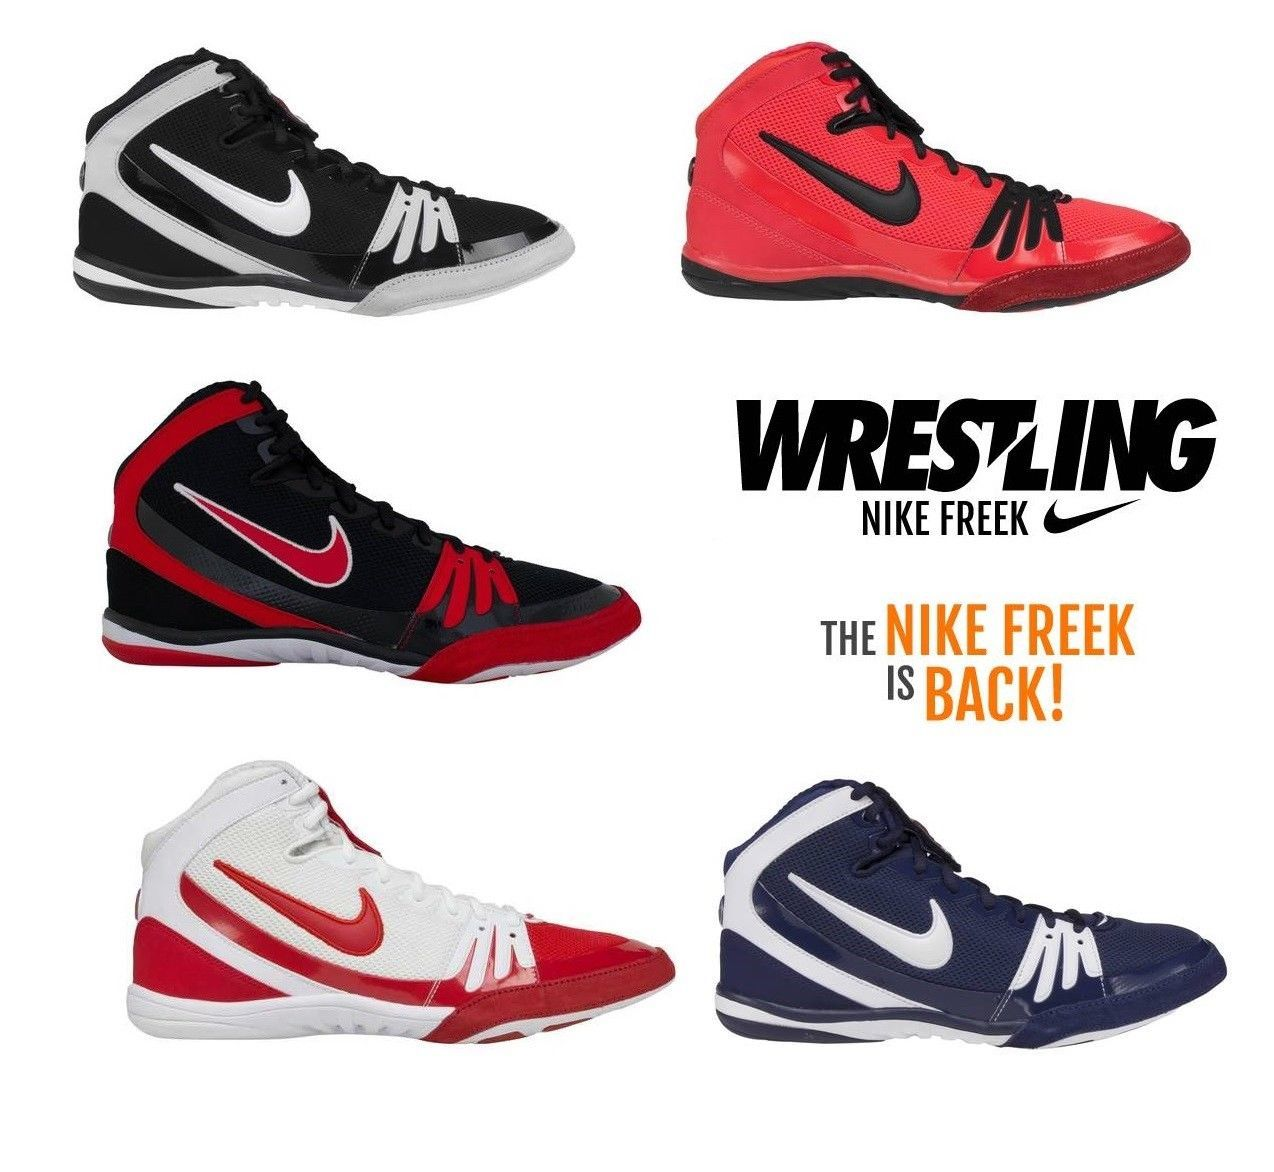 Wrestling Shoes Boots NIKE TAKEDOWN 4 Ringerschuhe Chaussures de Lutte